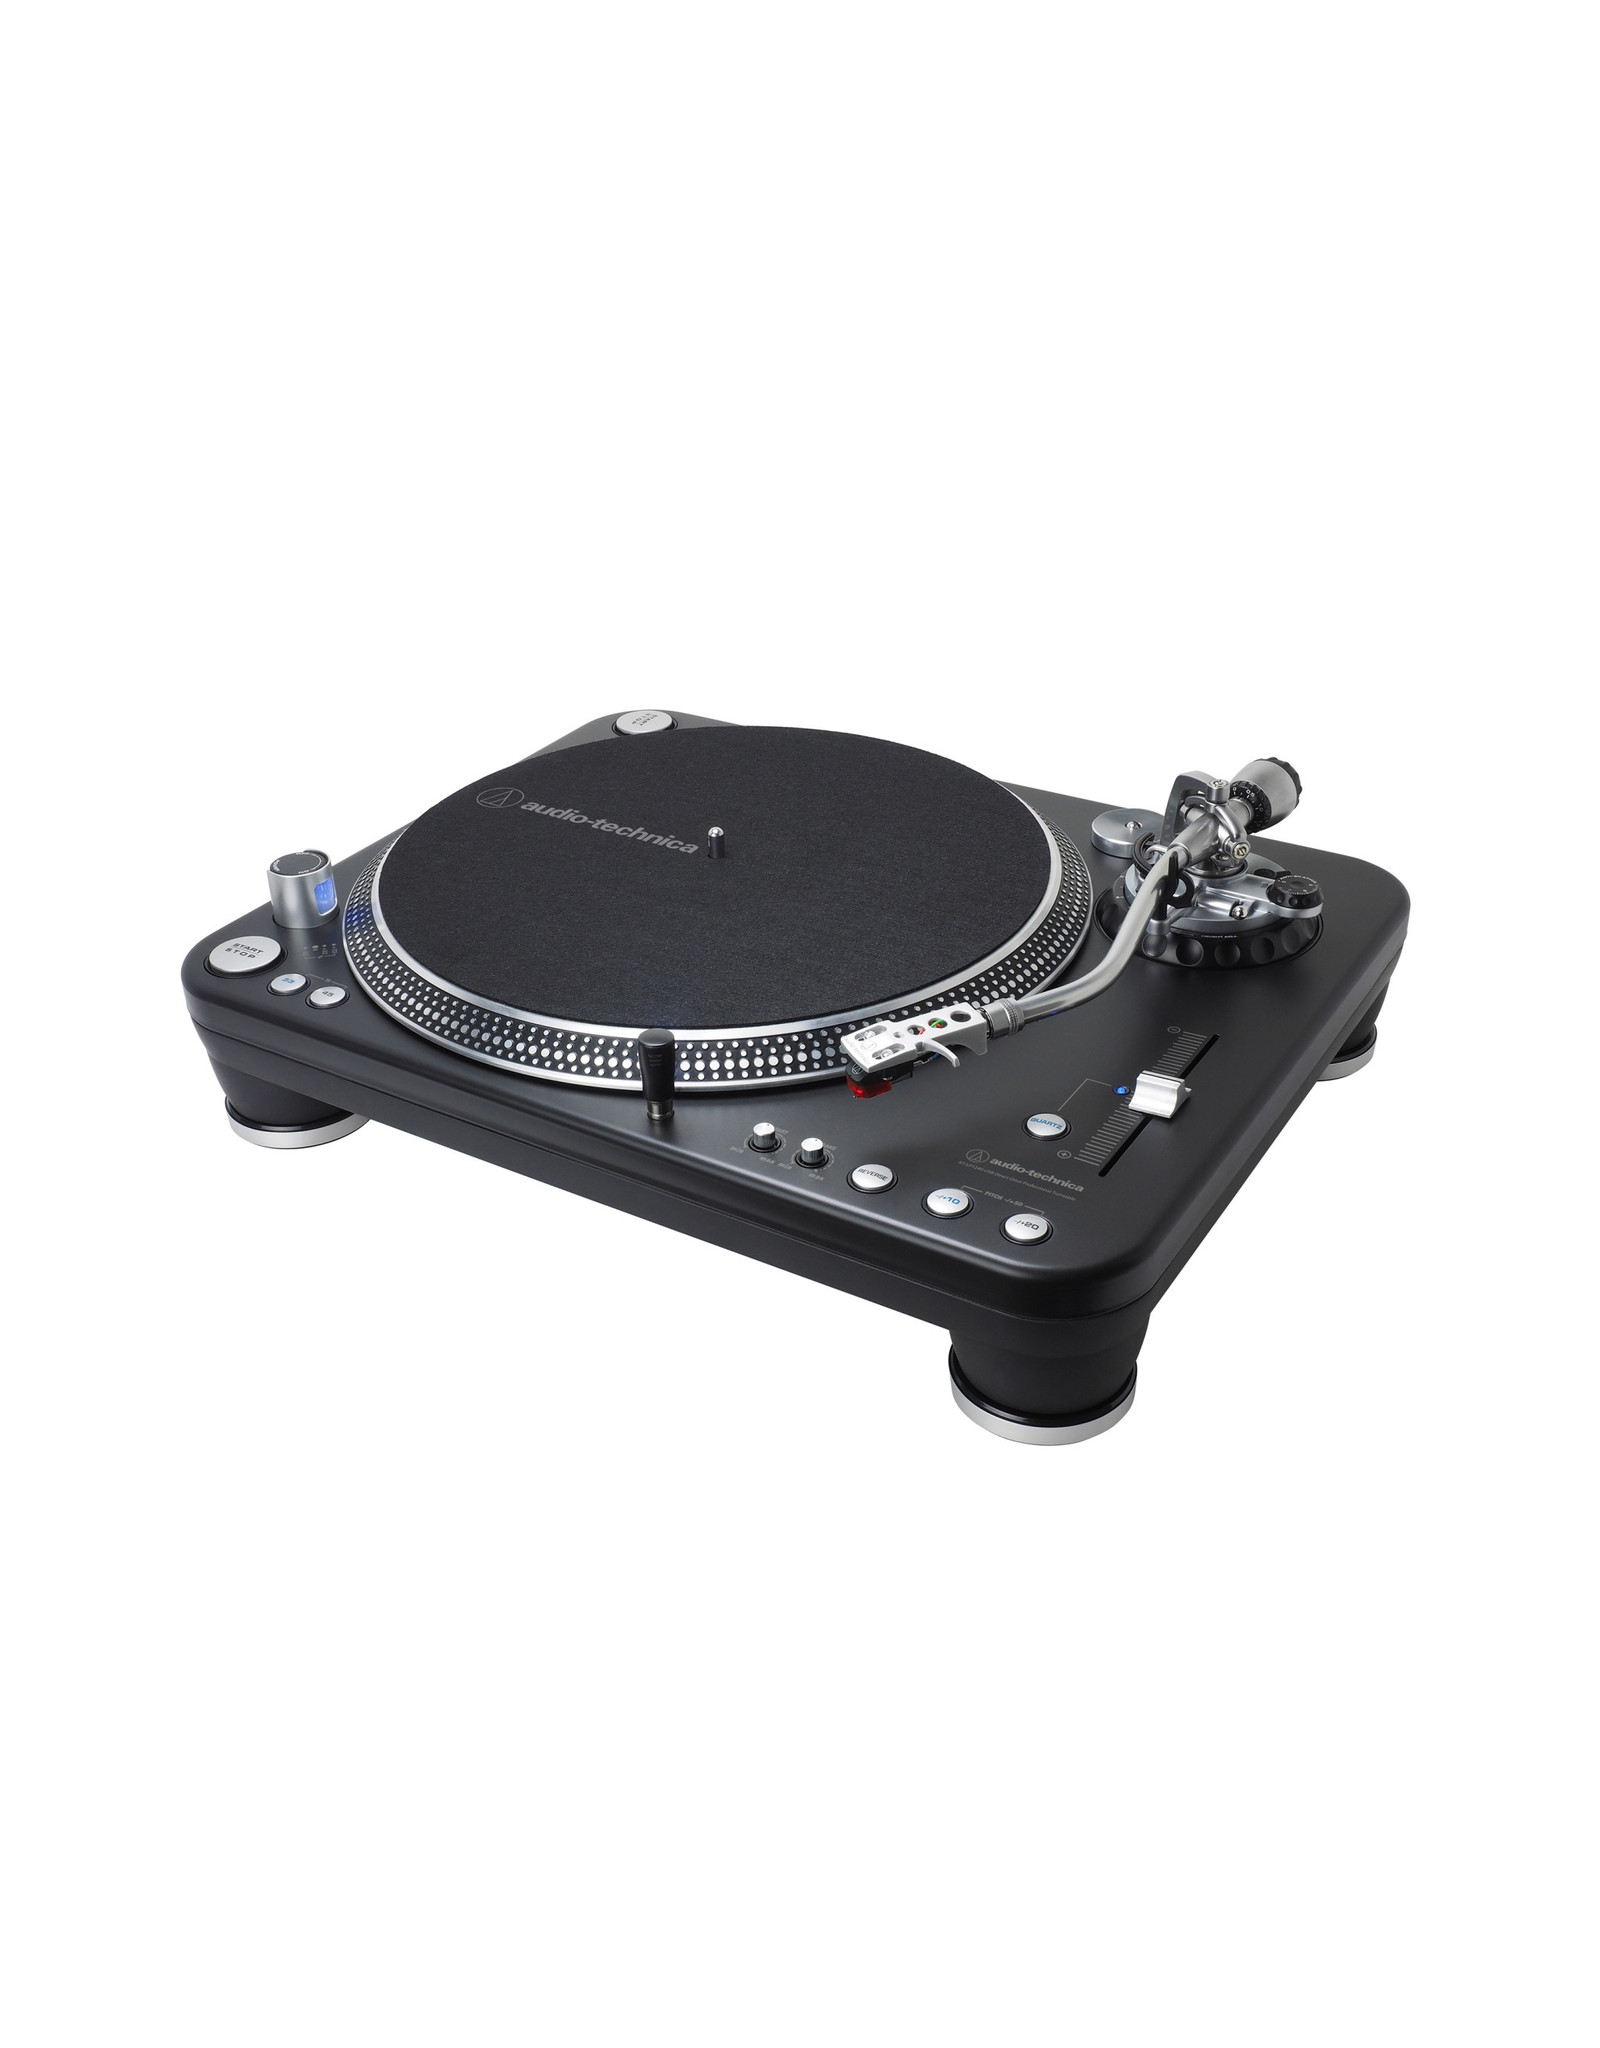 Audio-Technica Audio-Technica AT-LP1240-USBXP USB Turntable